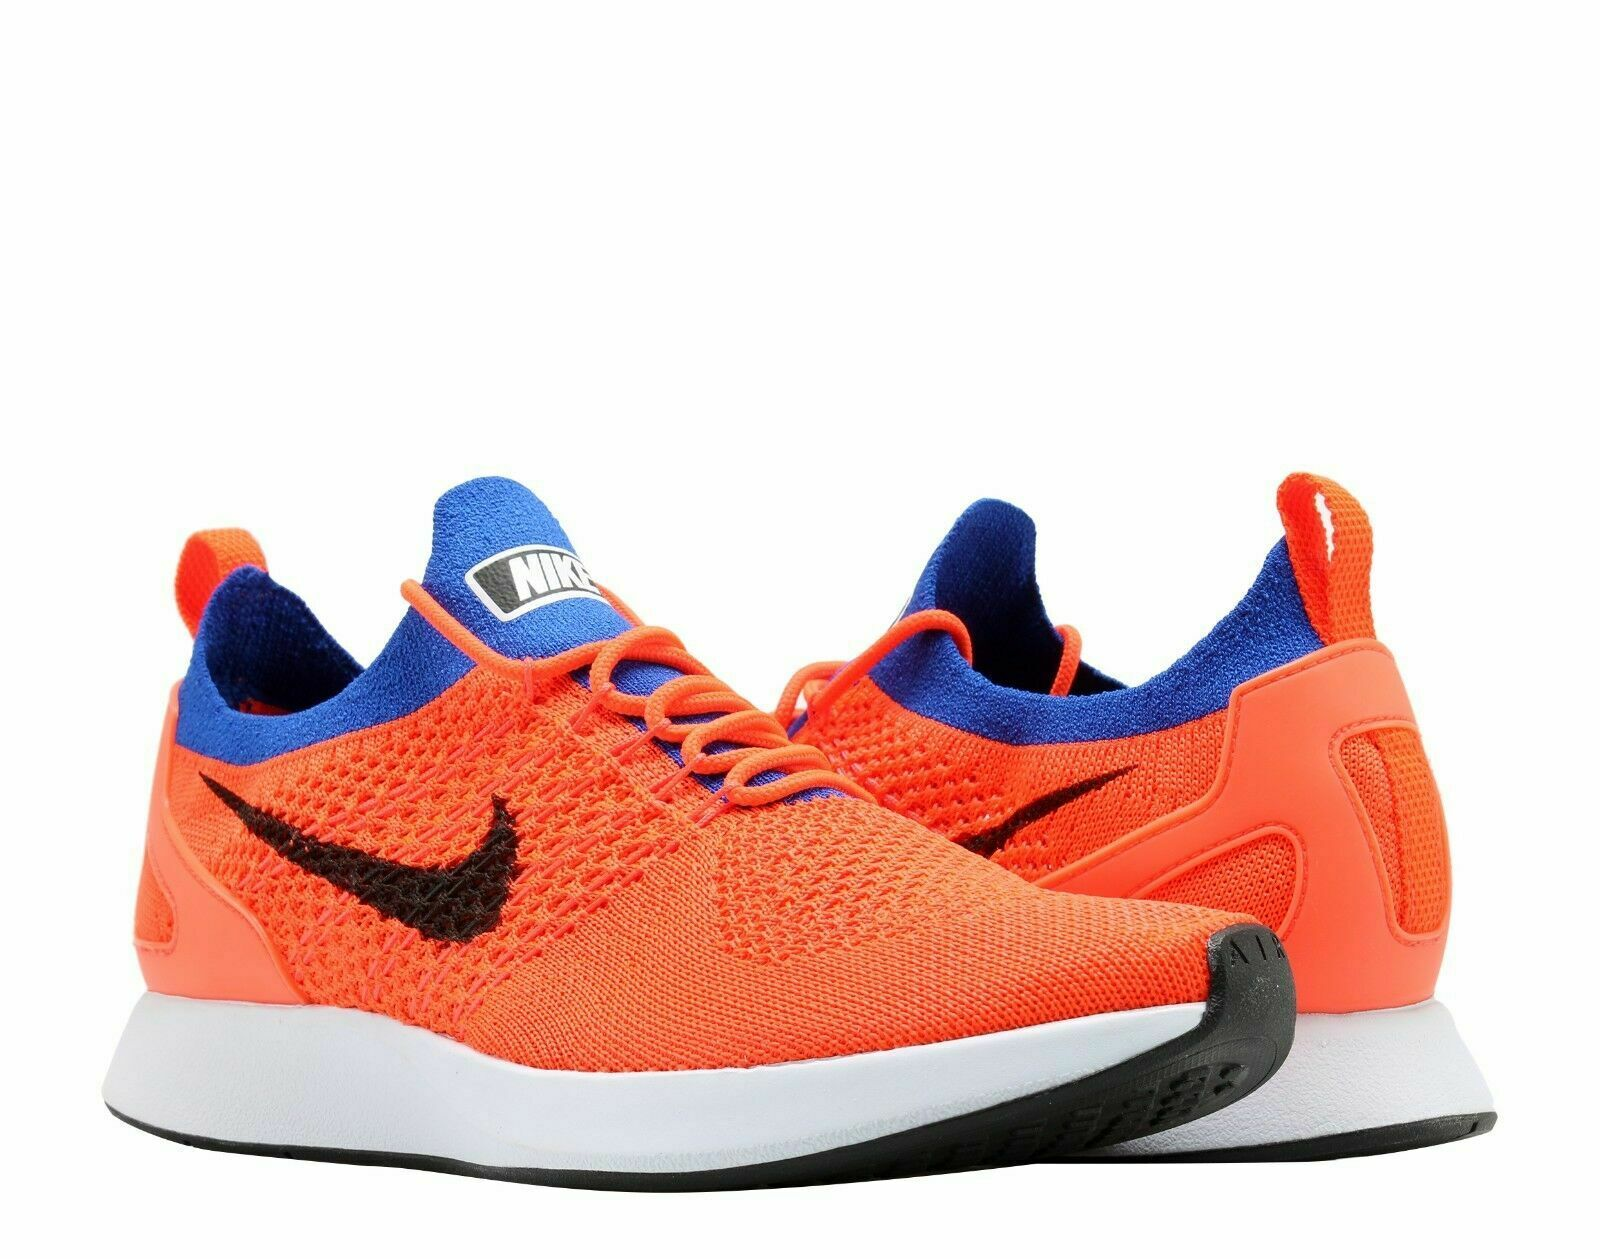 Nike Air Zoom Mariah Flyknit Men's Running shoes Crimson Black bluee 918264 800